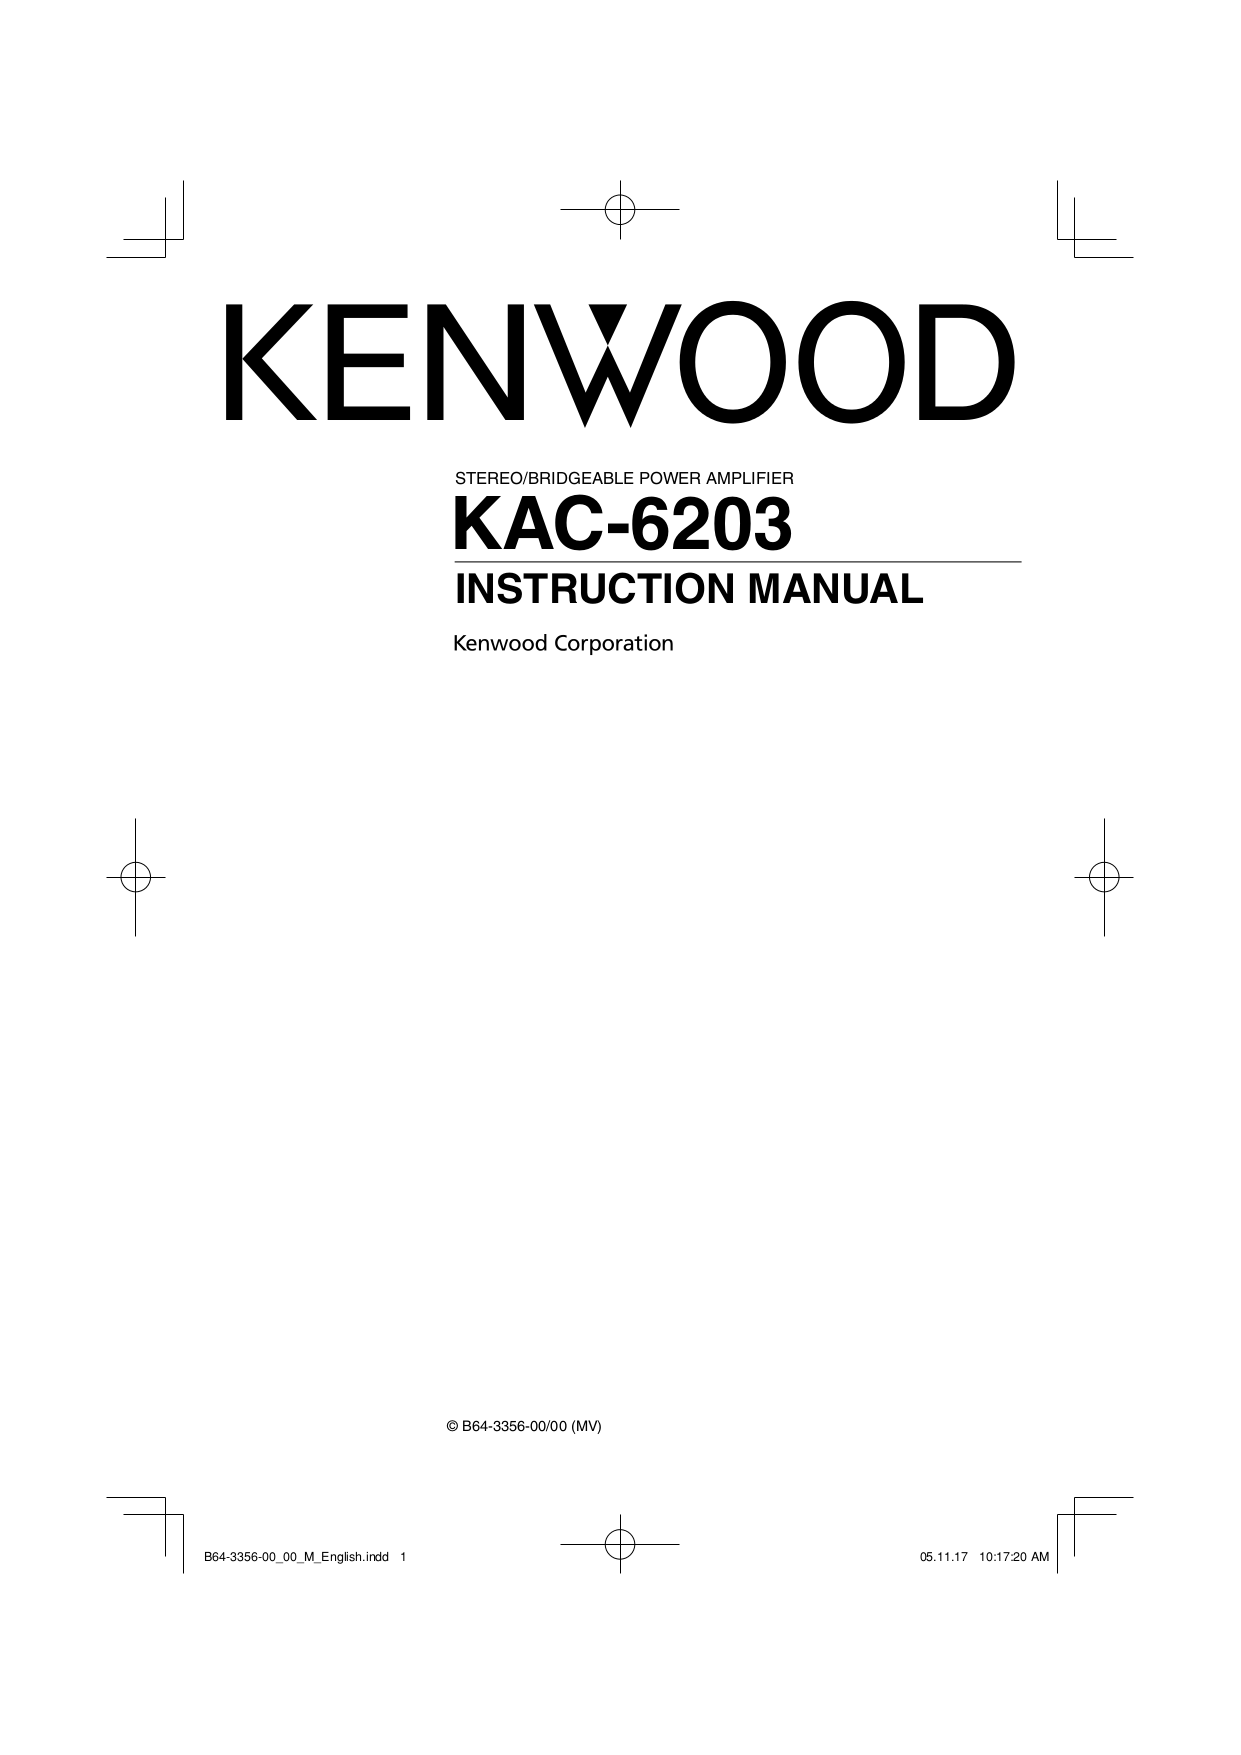 Download free pdf for Kenwood KAC-720 Amp manual